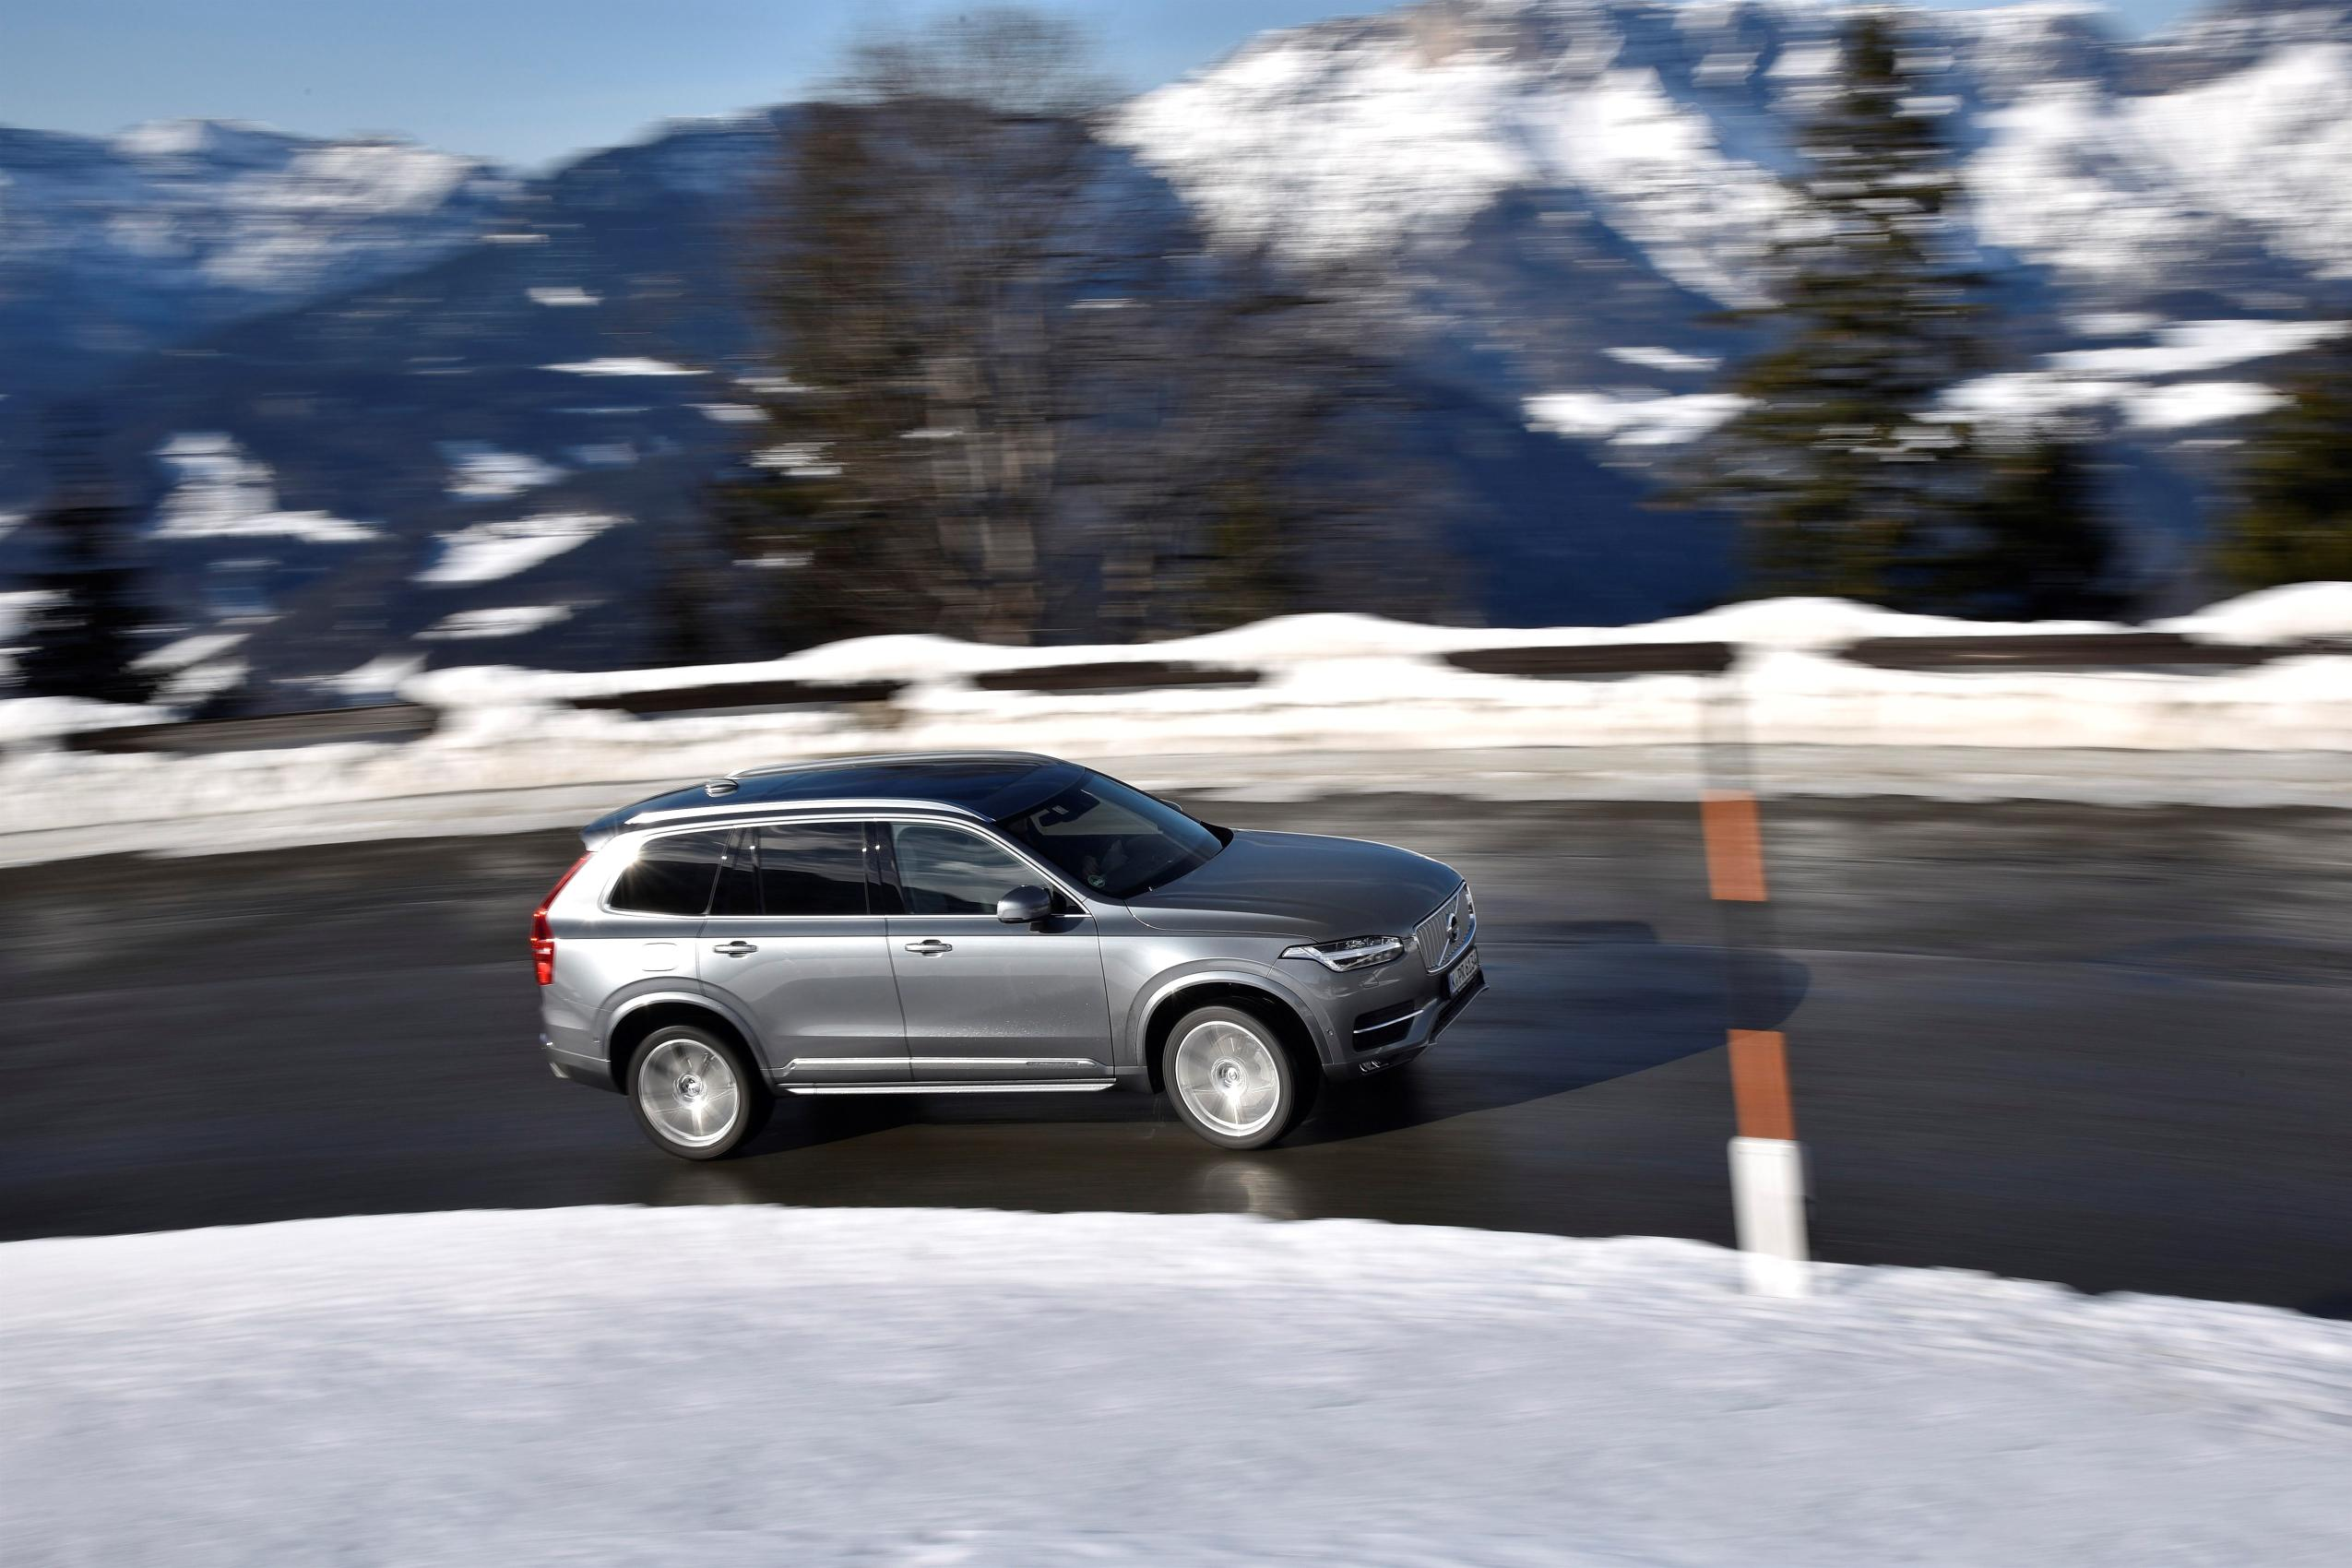 Volvo XC90 - going up mountain road